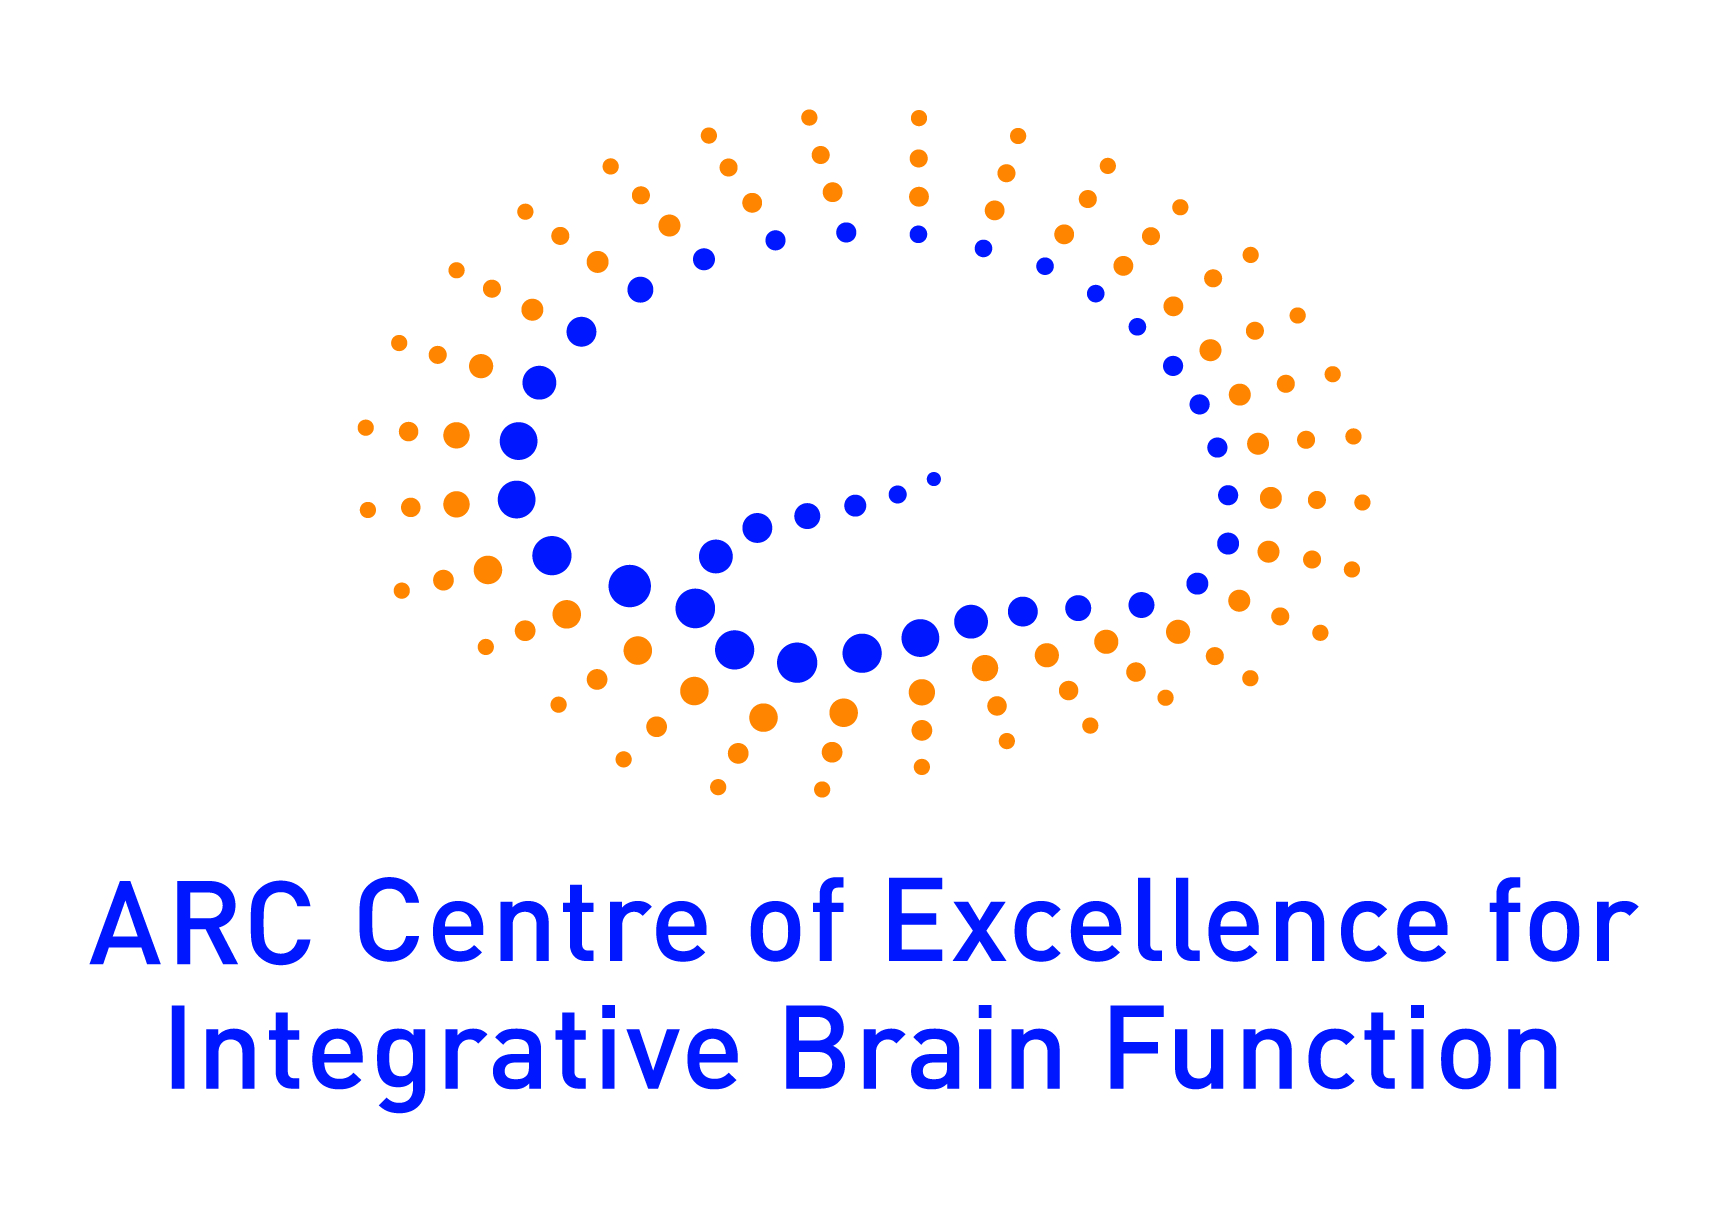 Brain Function ARC and name under